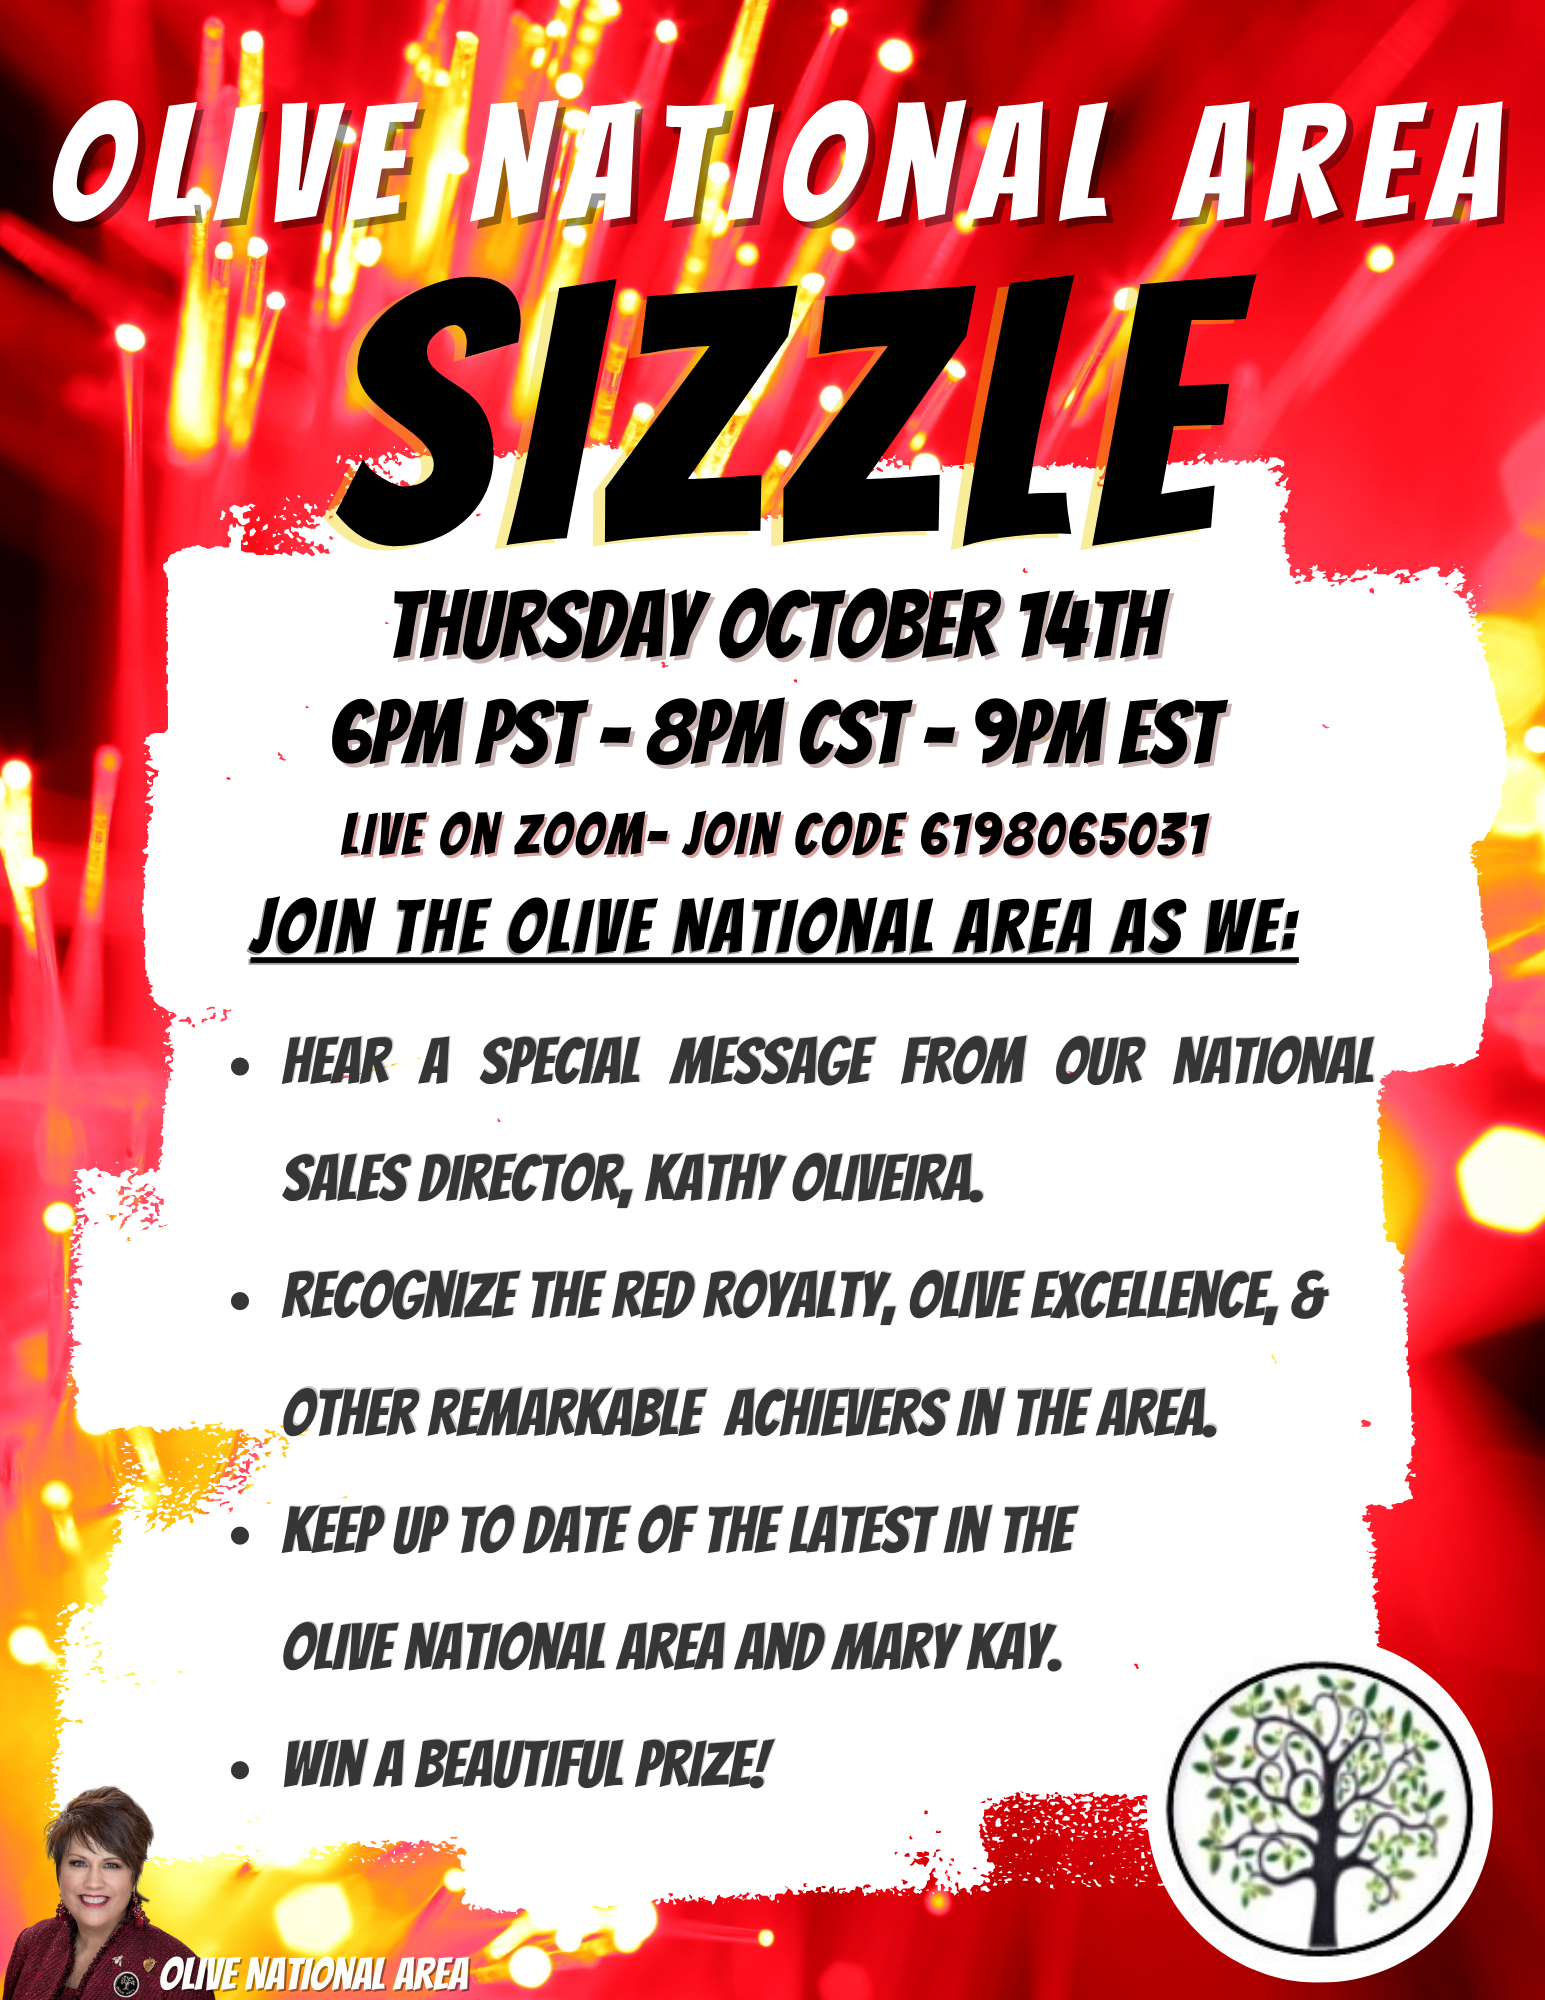 Olive area Sizzle October 14